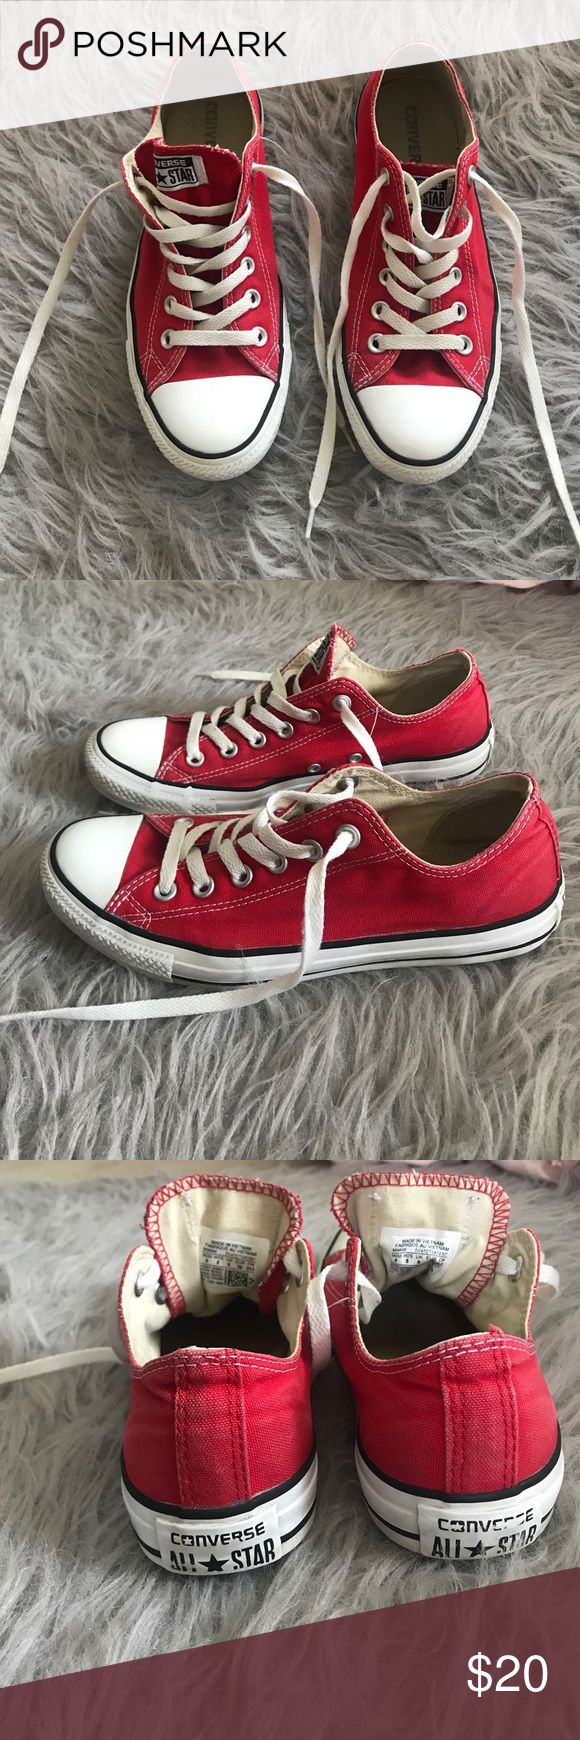 Red Converse Shoes Red Converse-gently used-$20 OBO Converse Shoes Sneakers